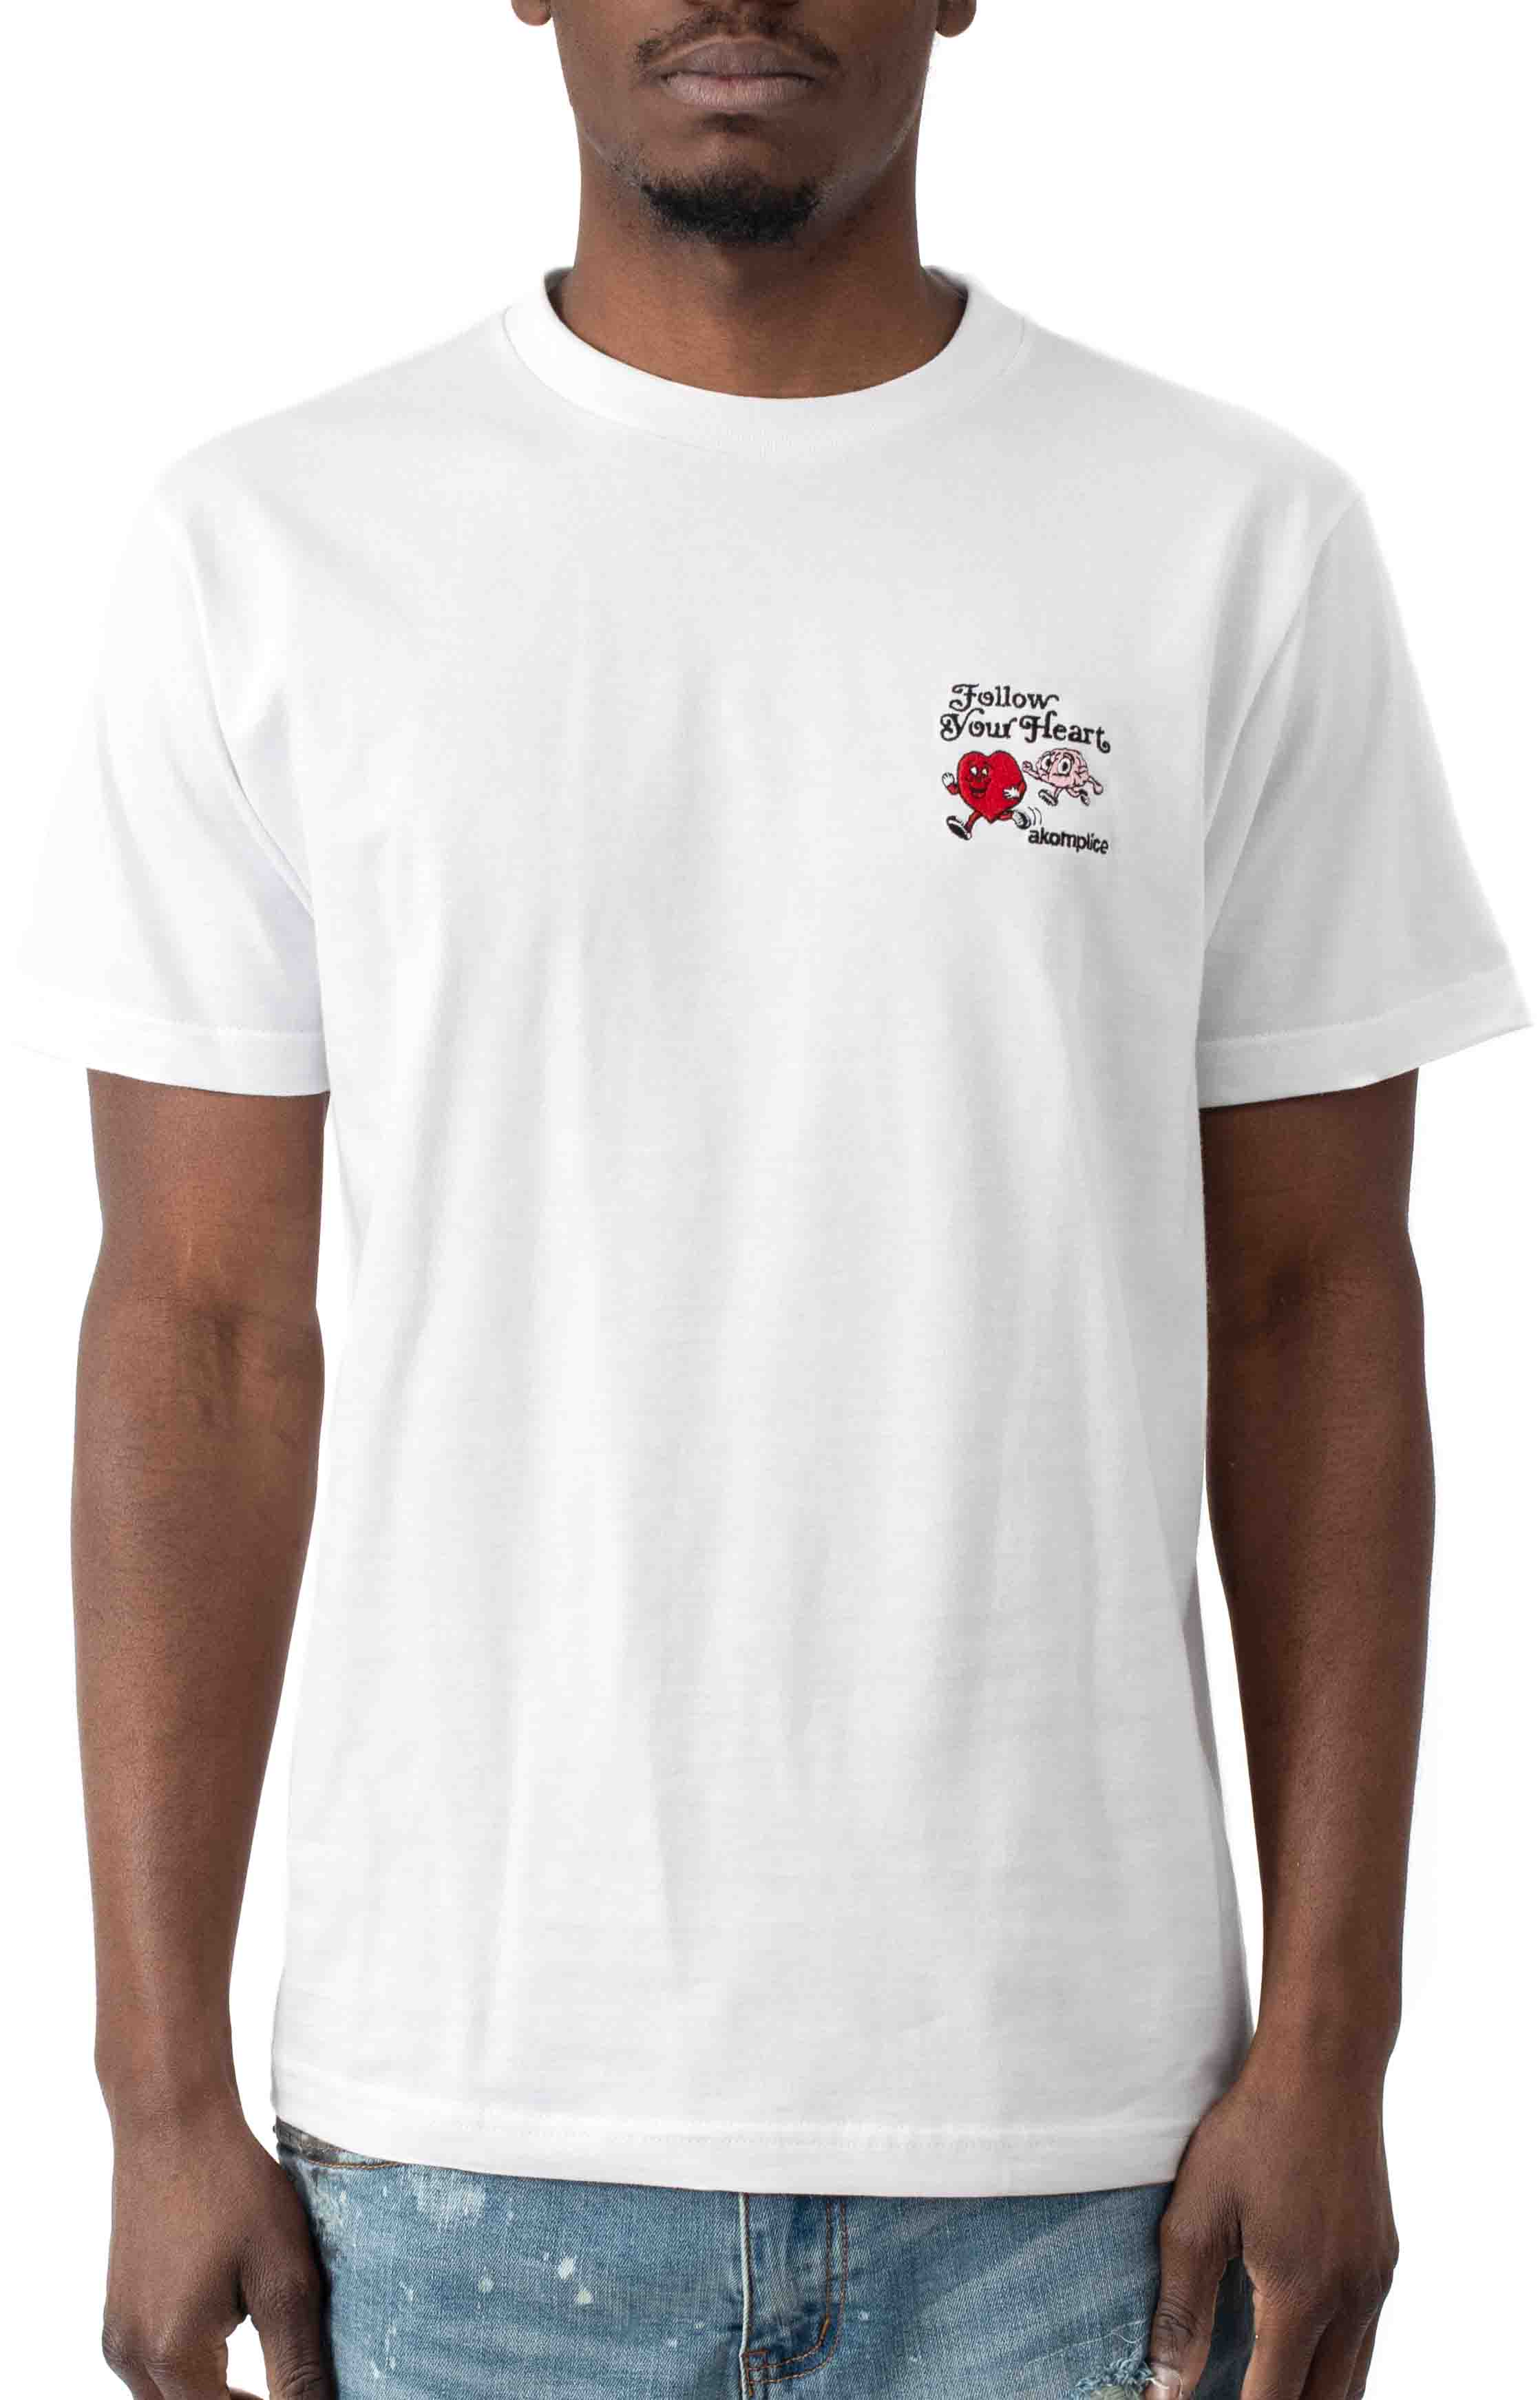 Follow Your Heart Embroidered T-Shirt - White